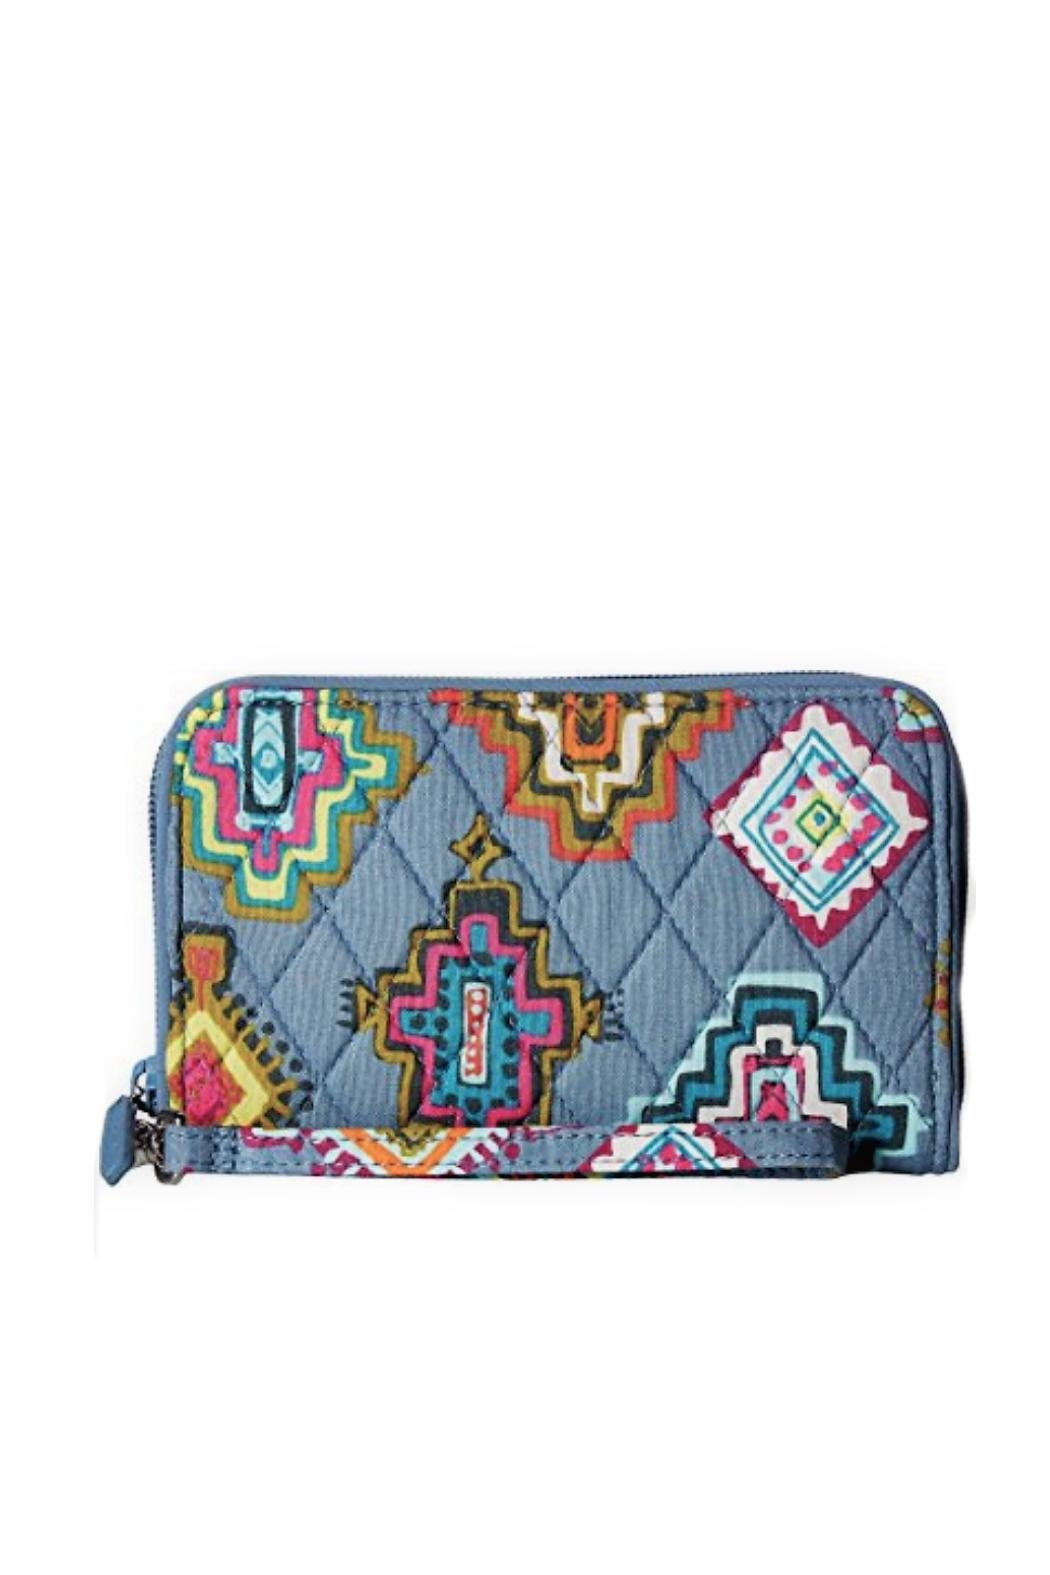 a742328f25 Vera Bradley Painted Medallions Grab- -Go from Kentucky by Mimi s ...